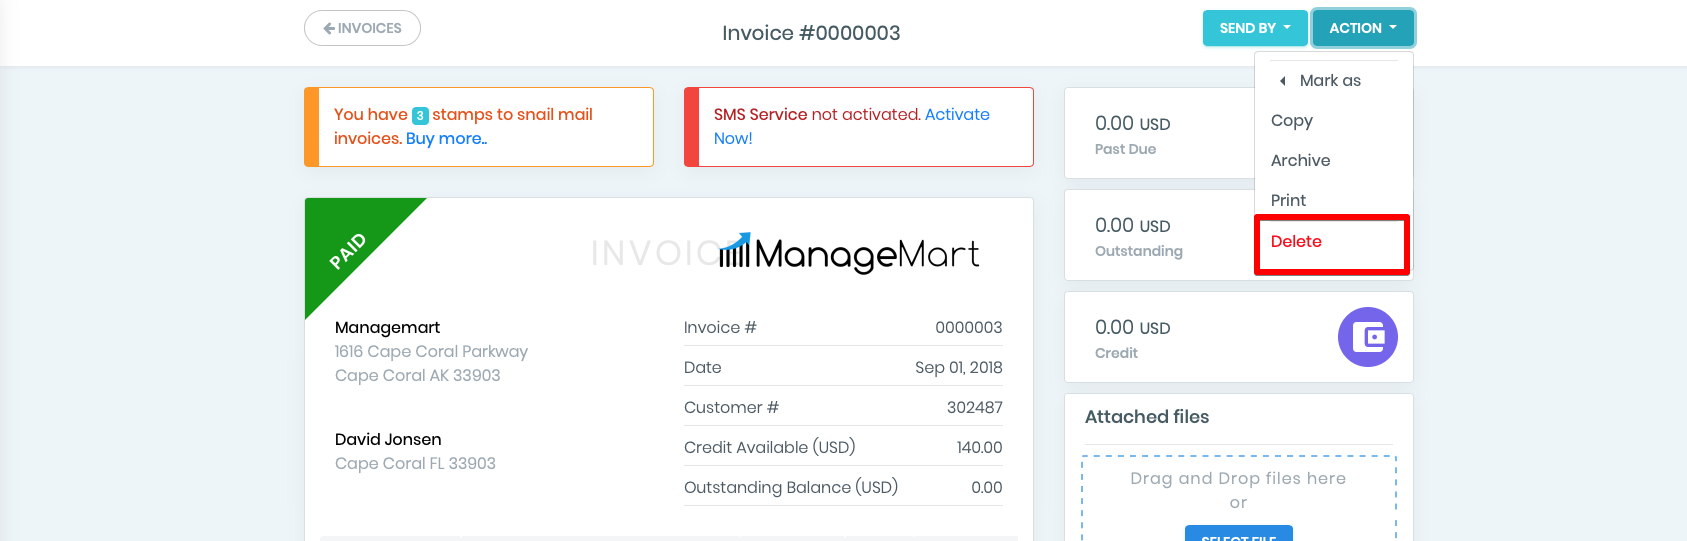 How to delete an invoice?